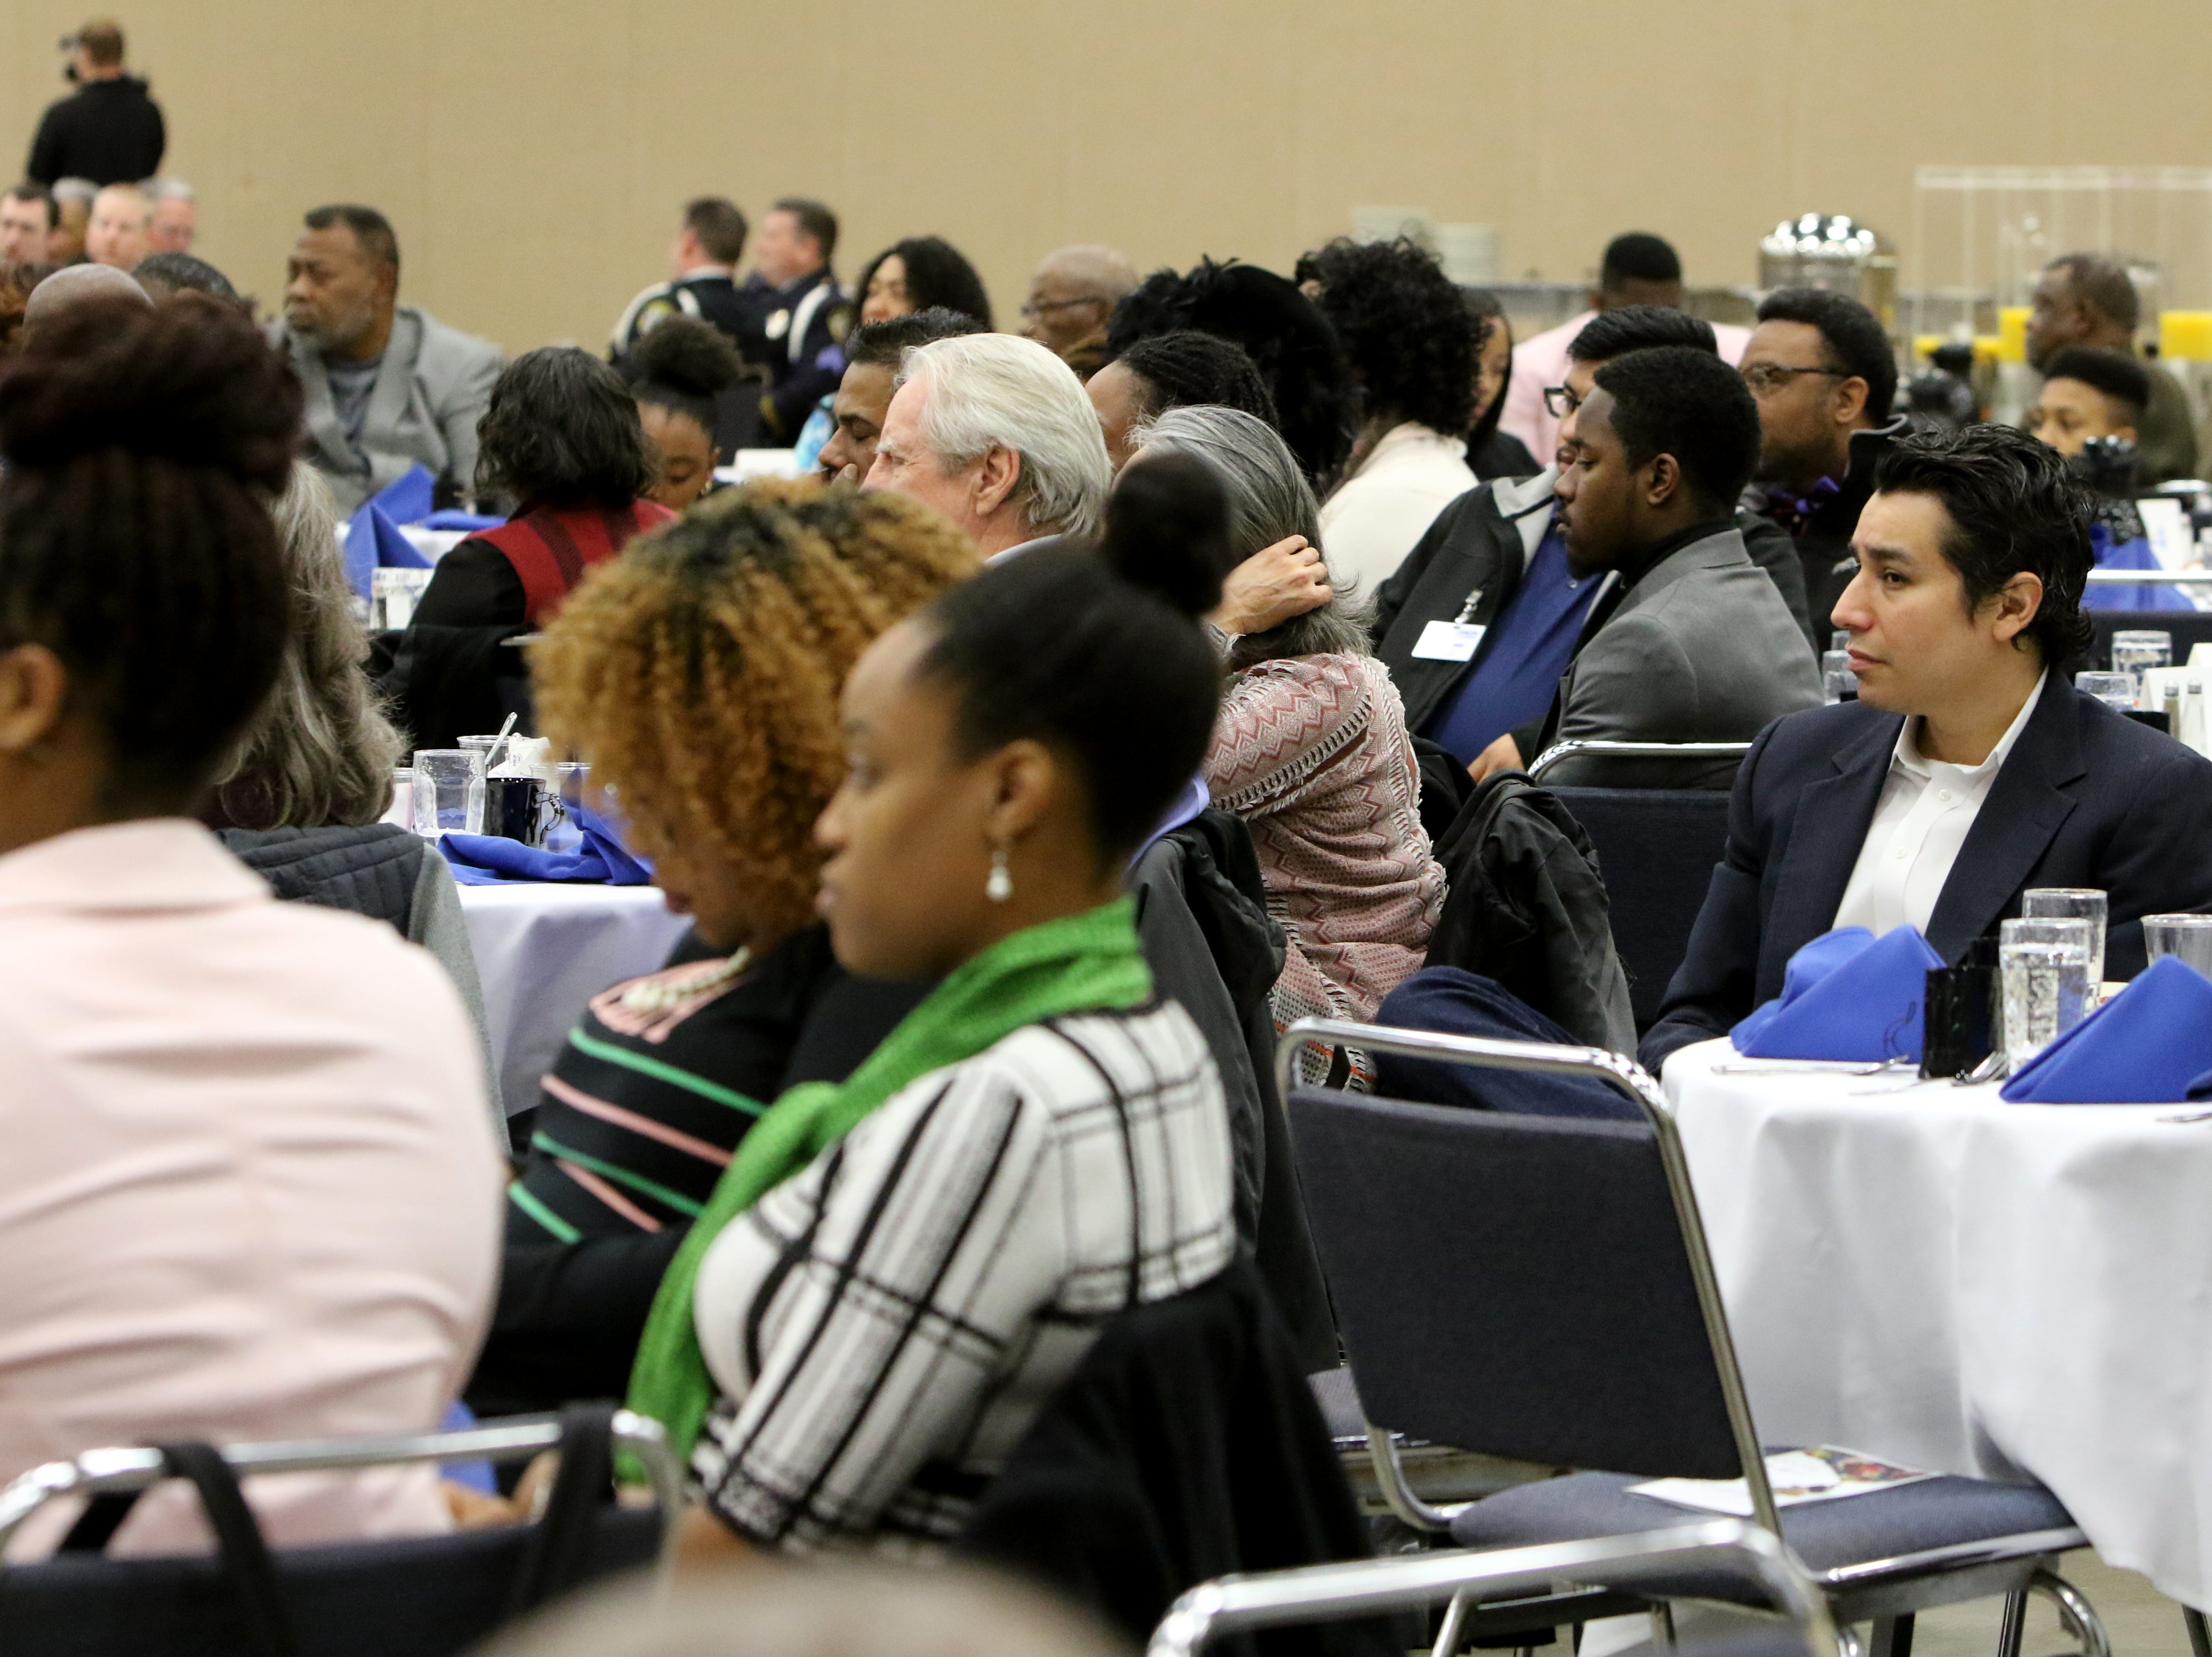 Attendees listen to guest speaker Jonathan Evans at the Dr. Martin Luther King, Jr. Scholarship and Prayer Breakfast Saturday, Jan. 19, 2019, at the Multi-Purpose Events Center.